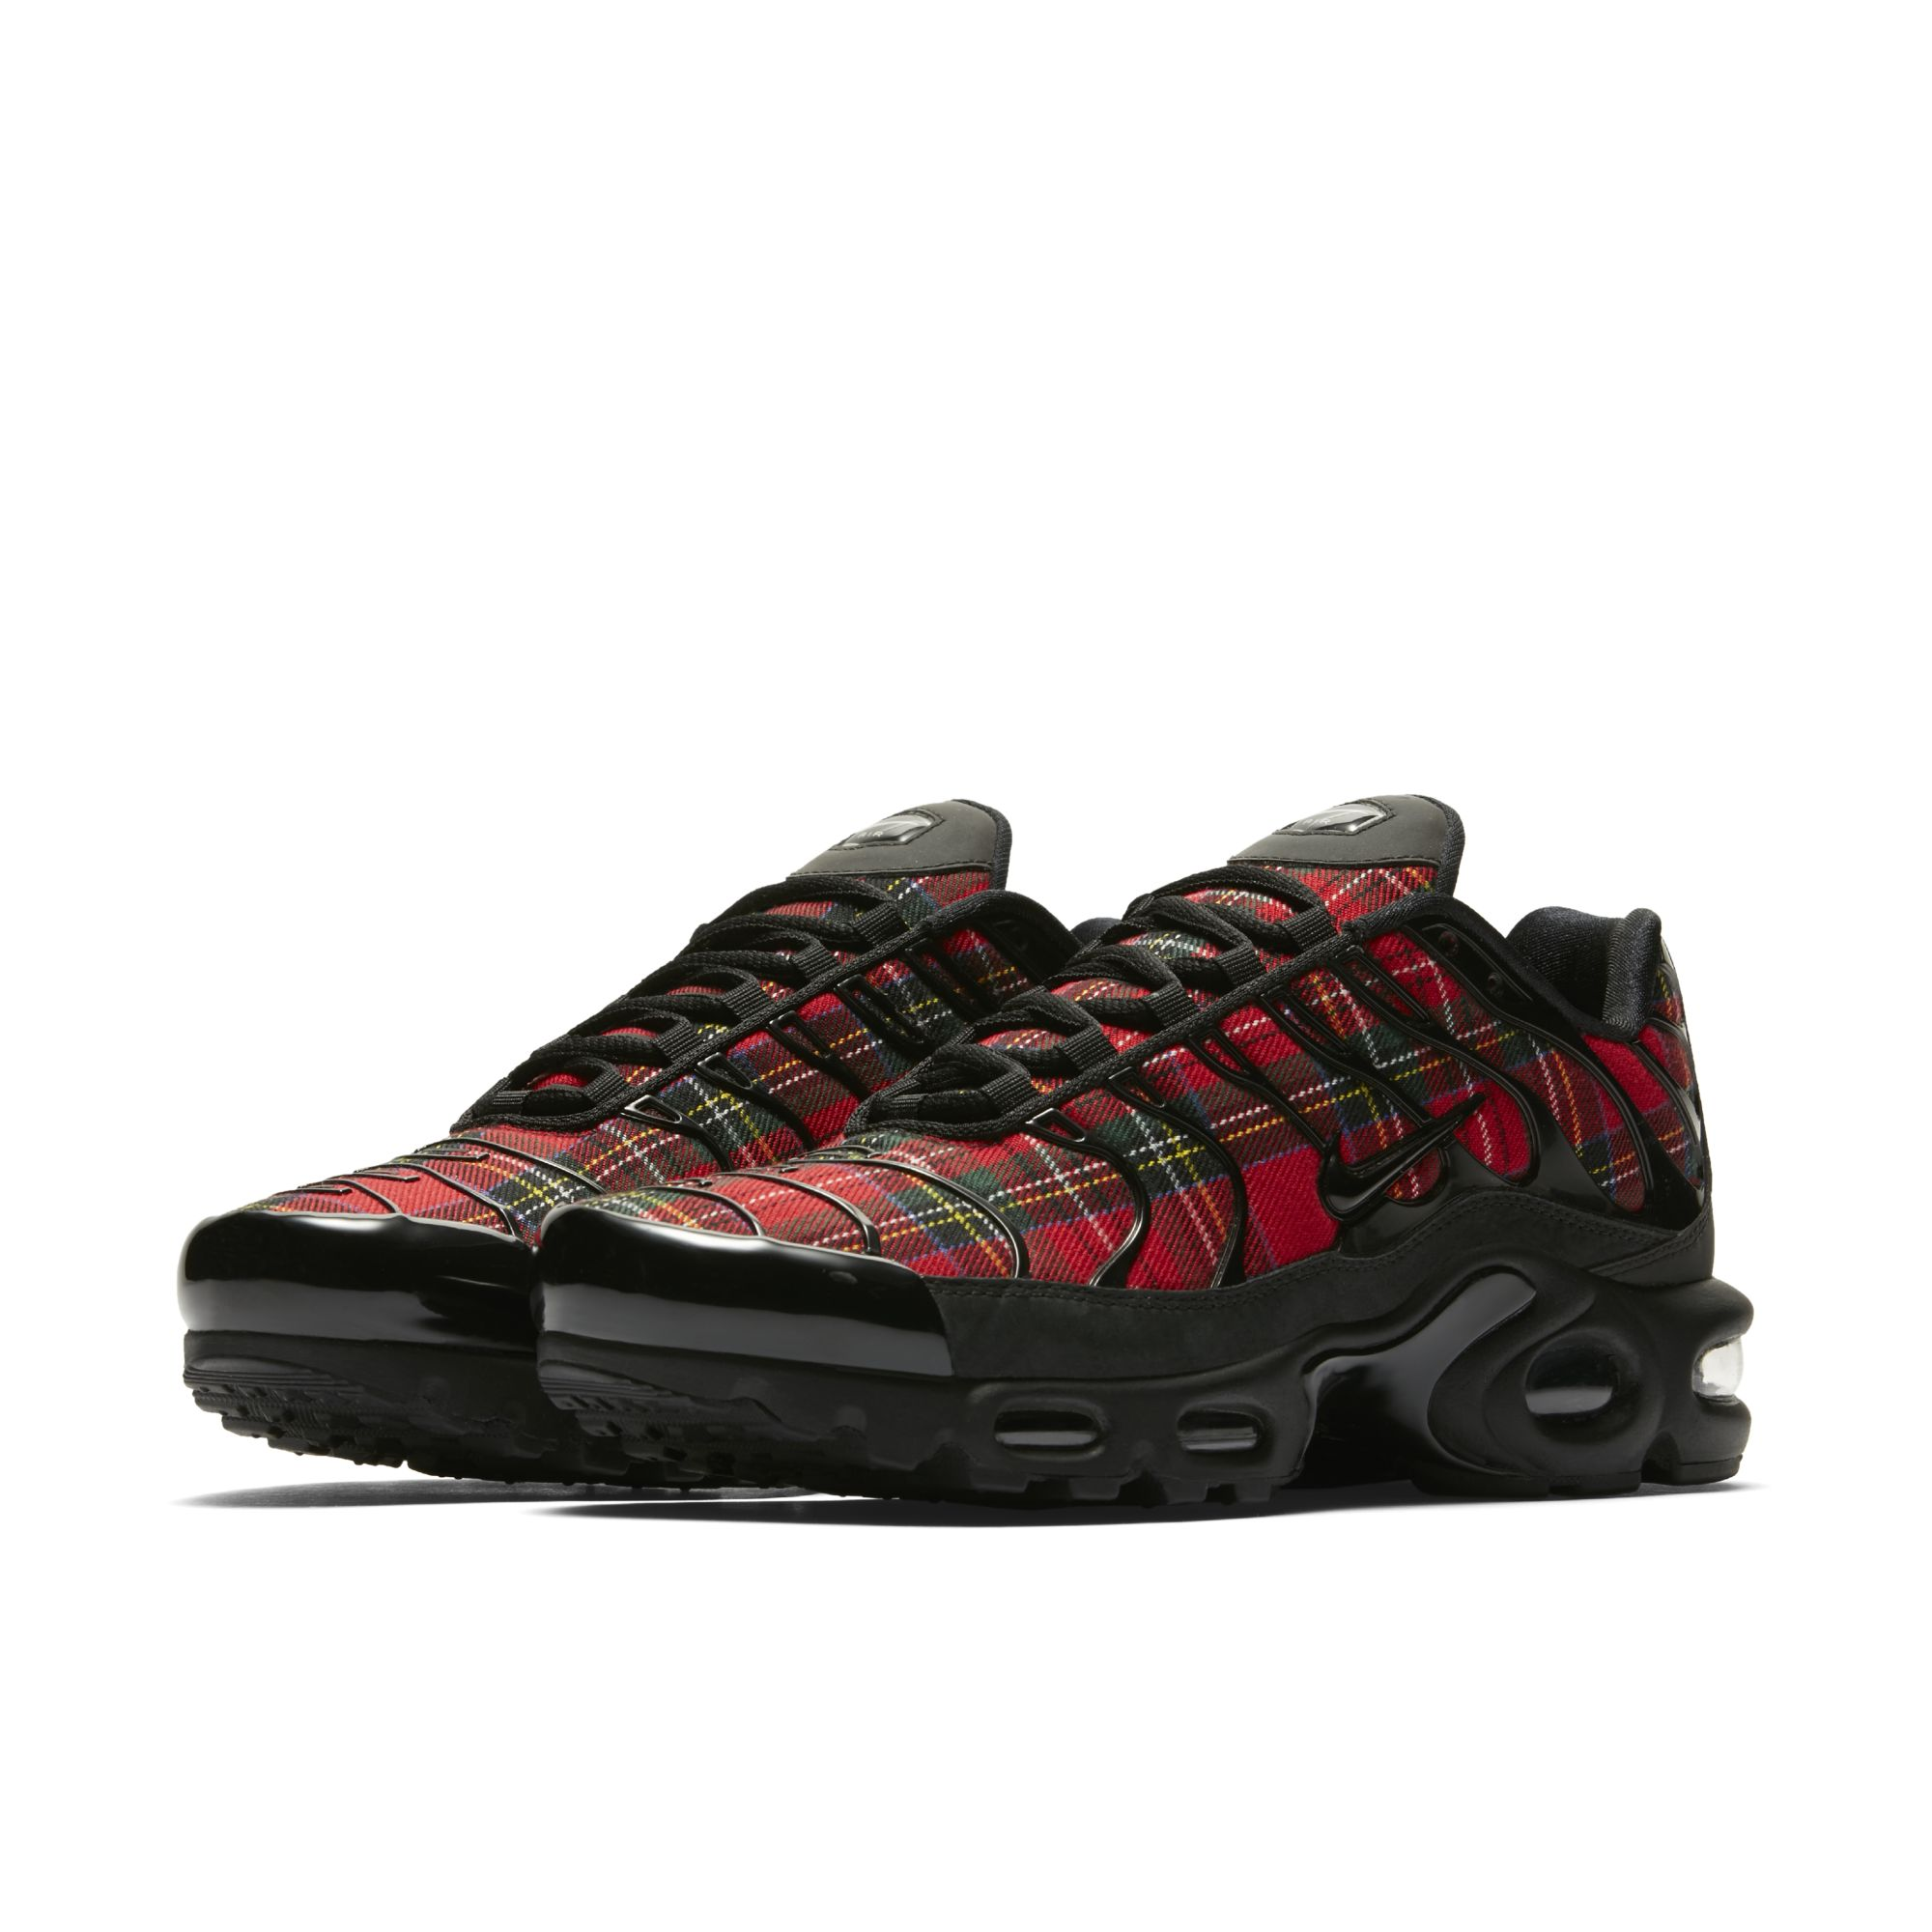 on sale 763da 392d6 Look Out For This Upcoming Womens Air Max Plus Colorway ...